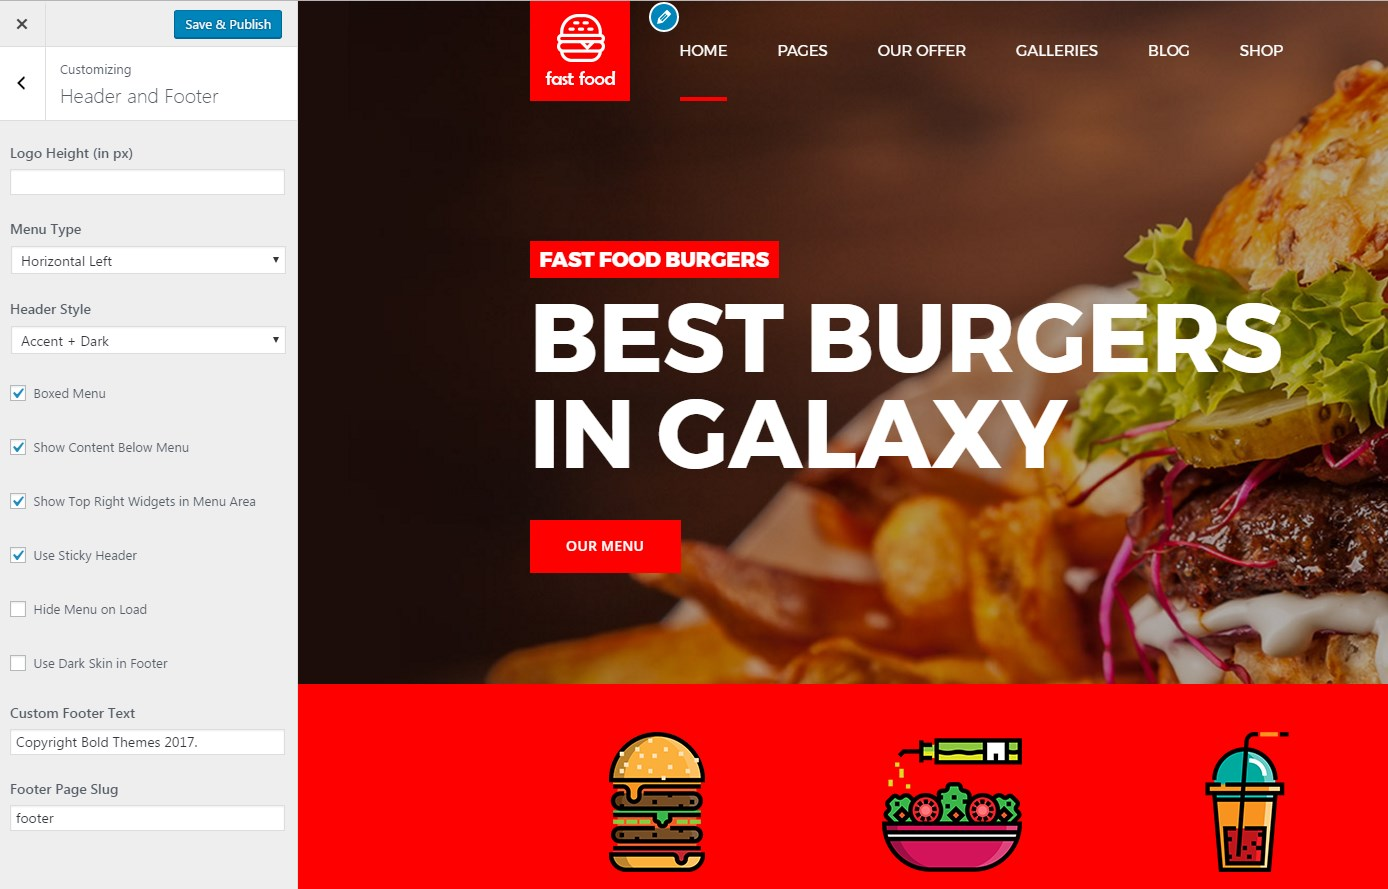 http://documentation.bold-themes.com/fast-food/wp-content/uploads/sites/13/2016/07/20-1.jpg